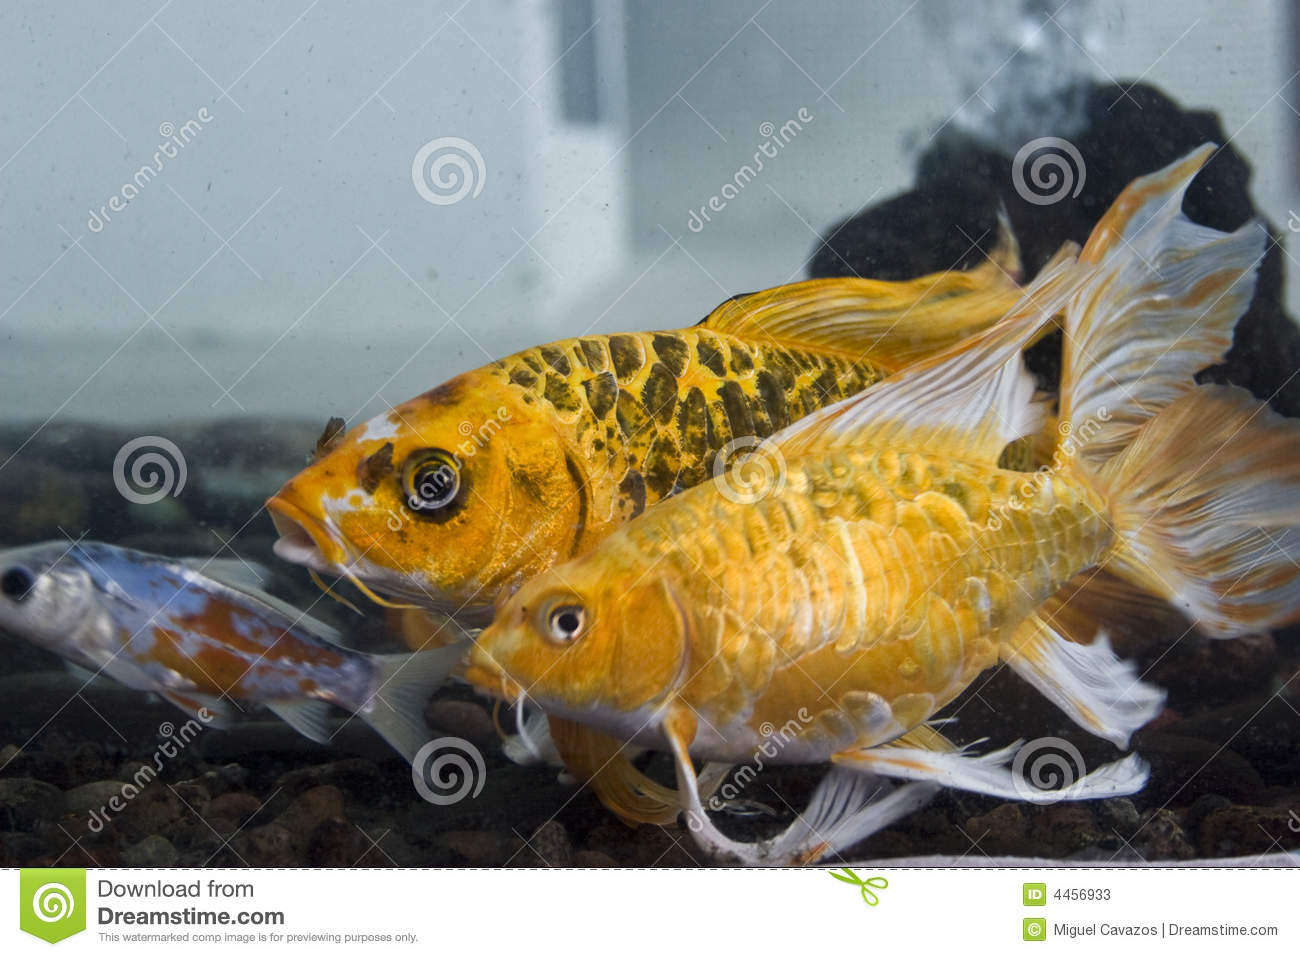 Koi fish stock photos image 4456933 for Coy fish tank